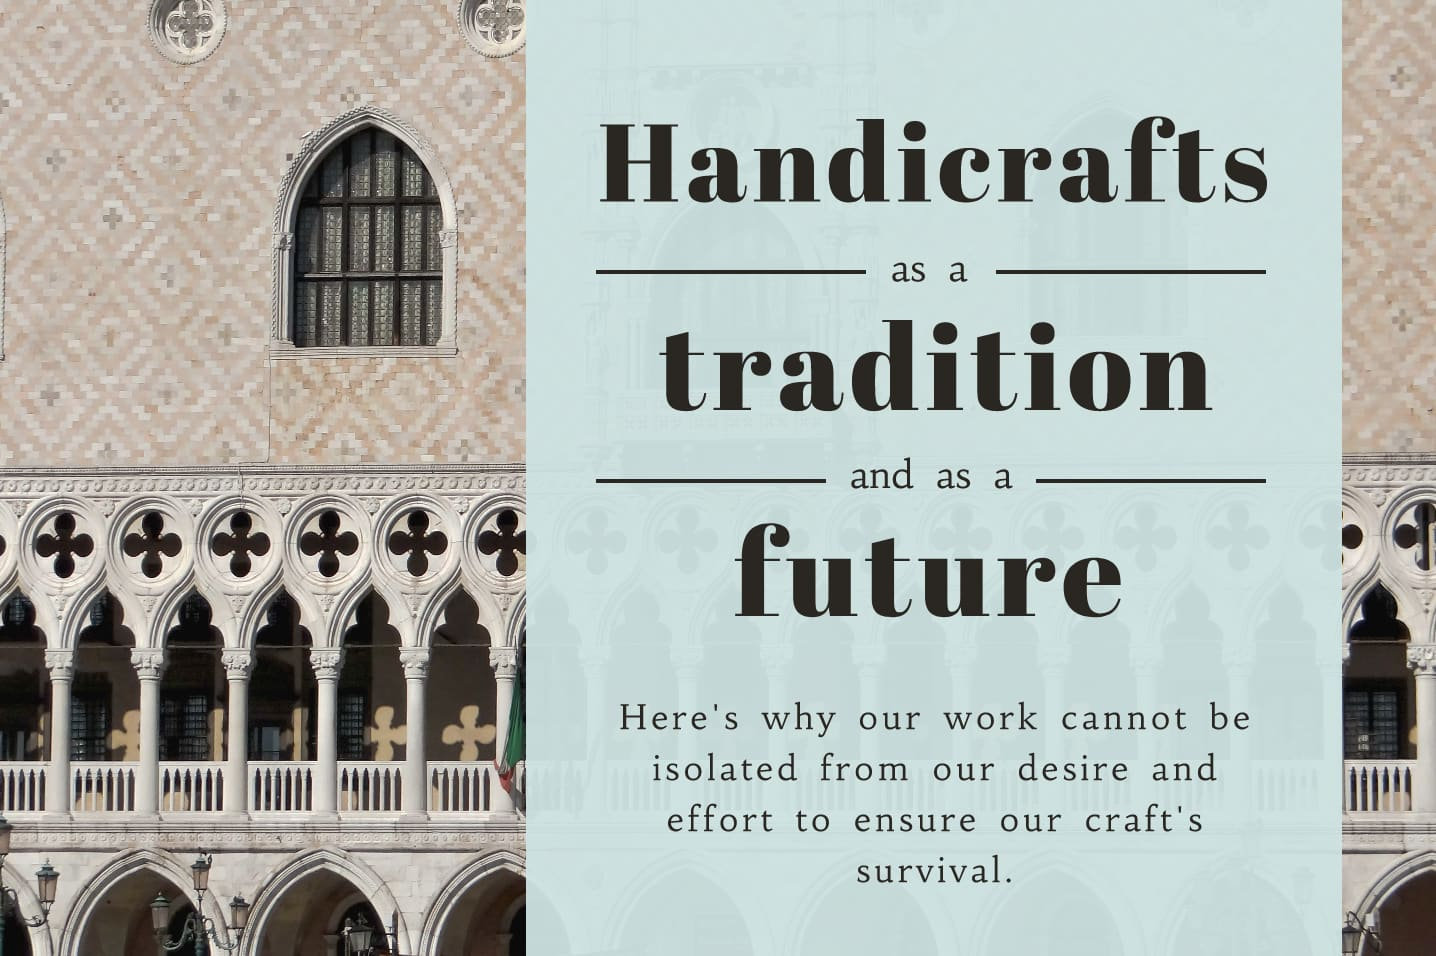 Handicrafts as a Tradition and as a Future